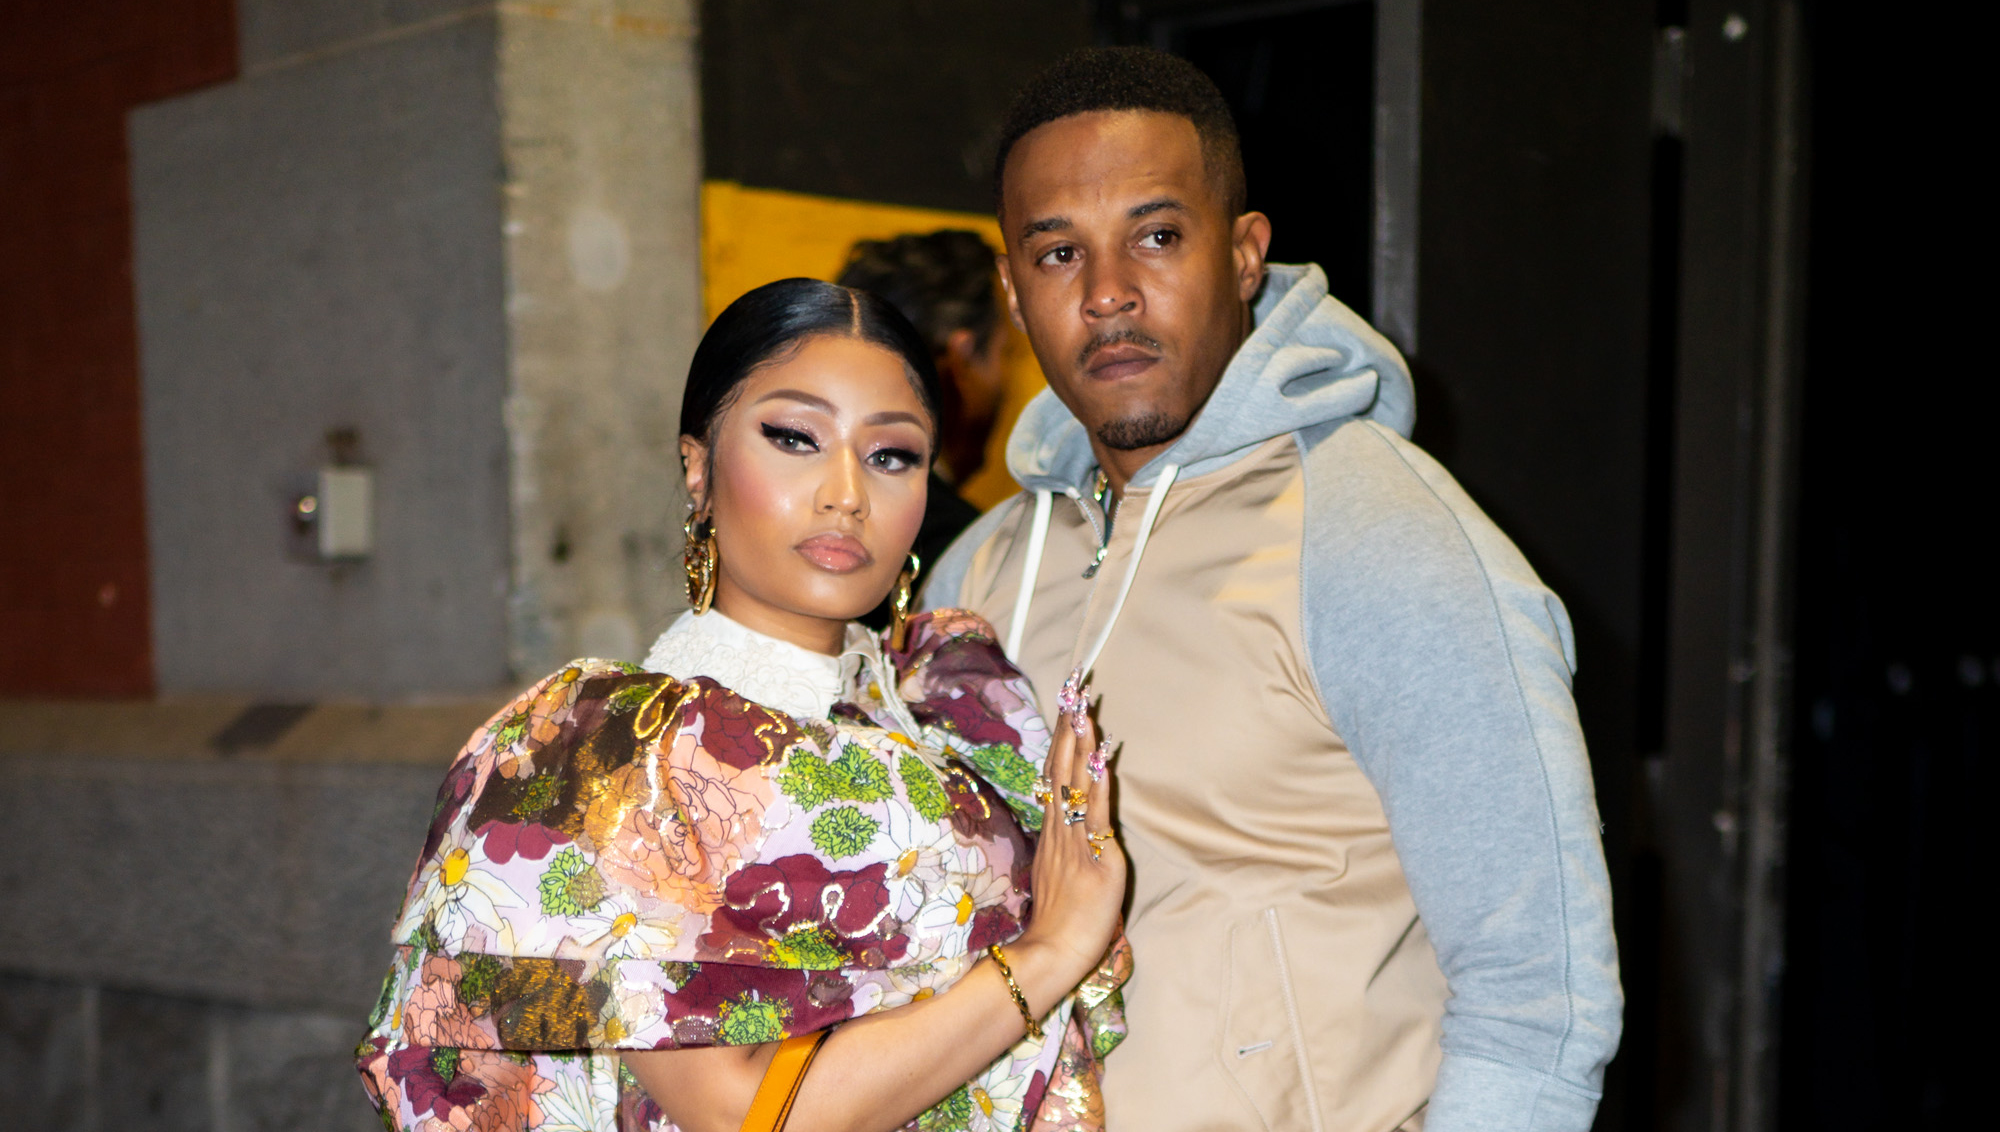 Nicki Minaj's husband's accuser discusses rape, alleged harassment from couple in first TV interview